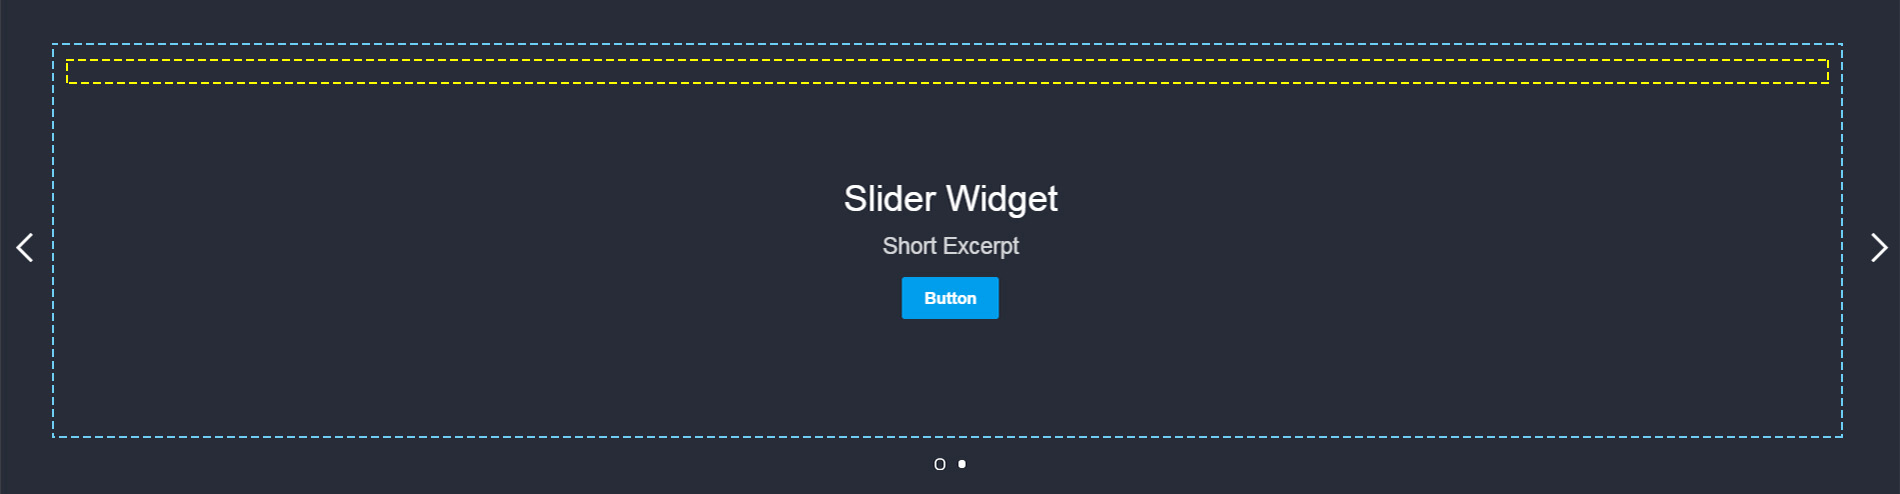 layers_before_slider_widget_item_inner